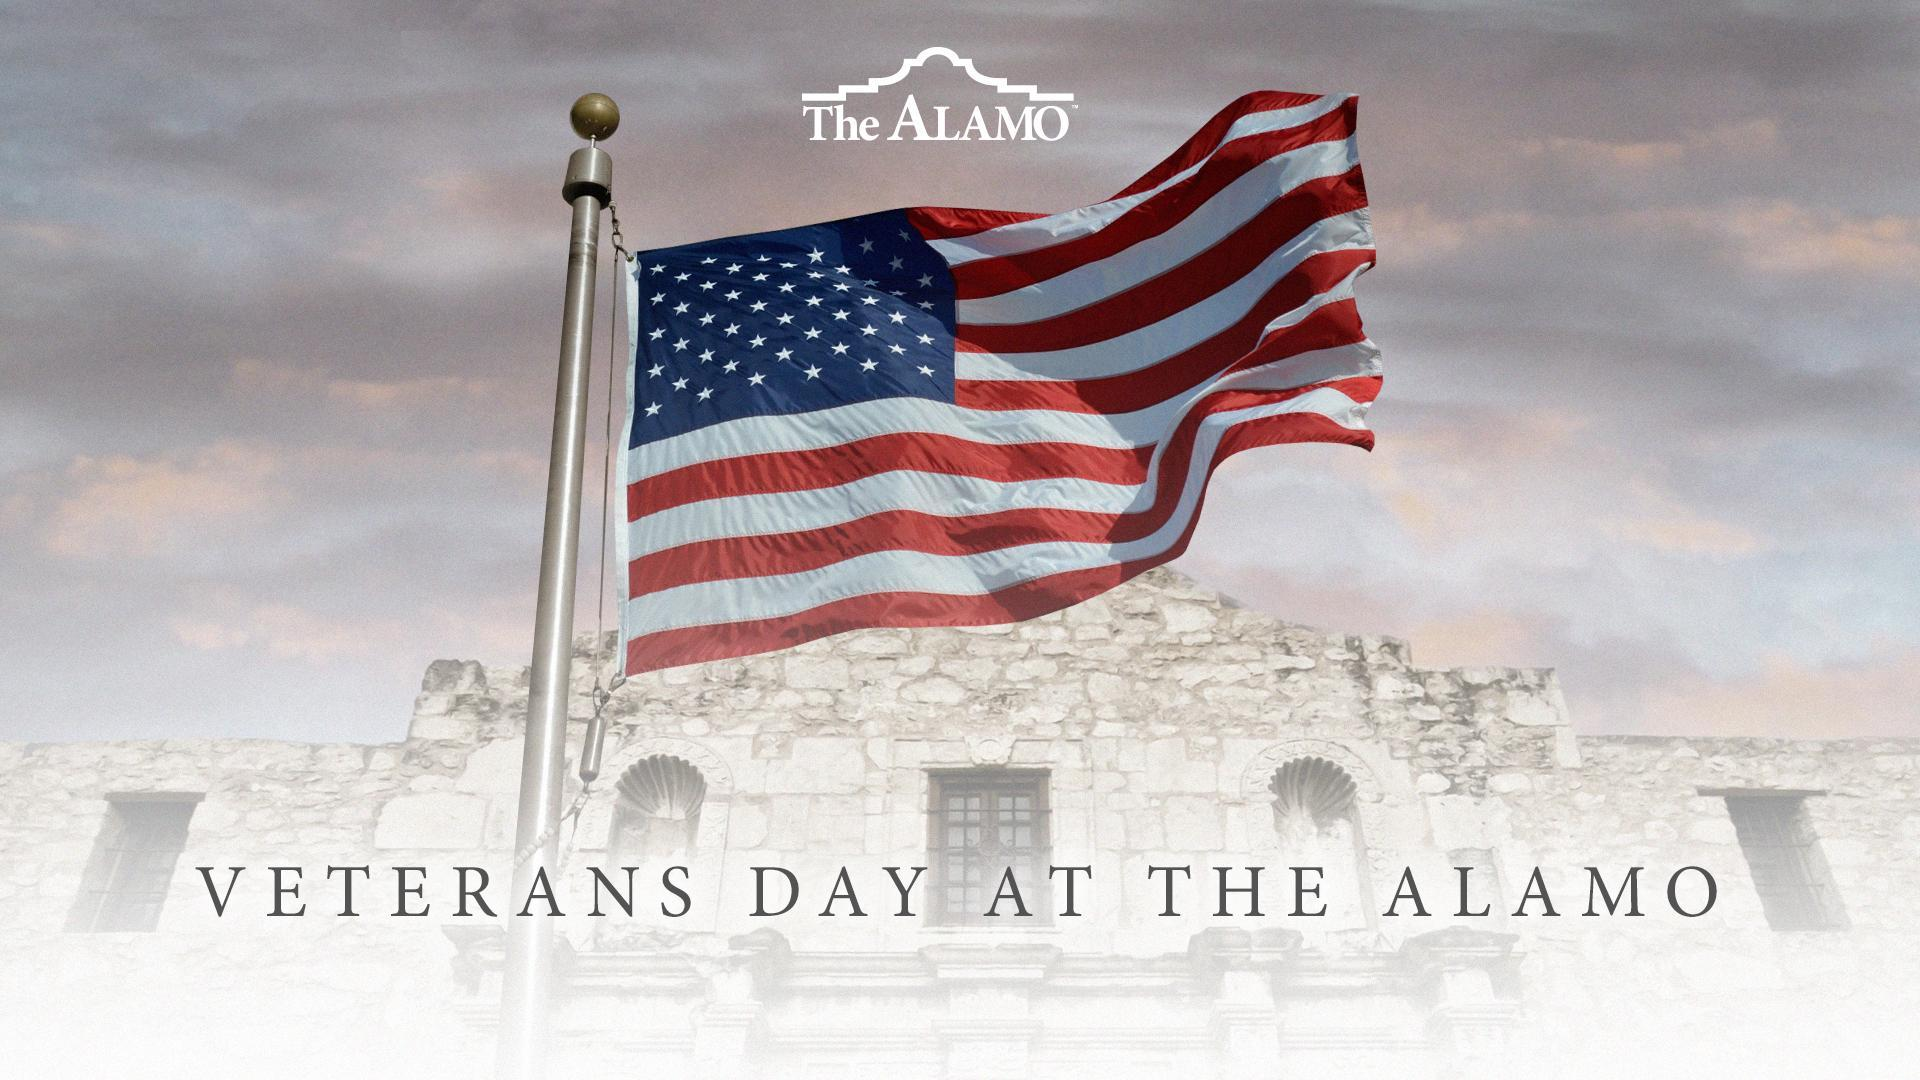 Veterans Day at the Alamo